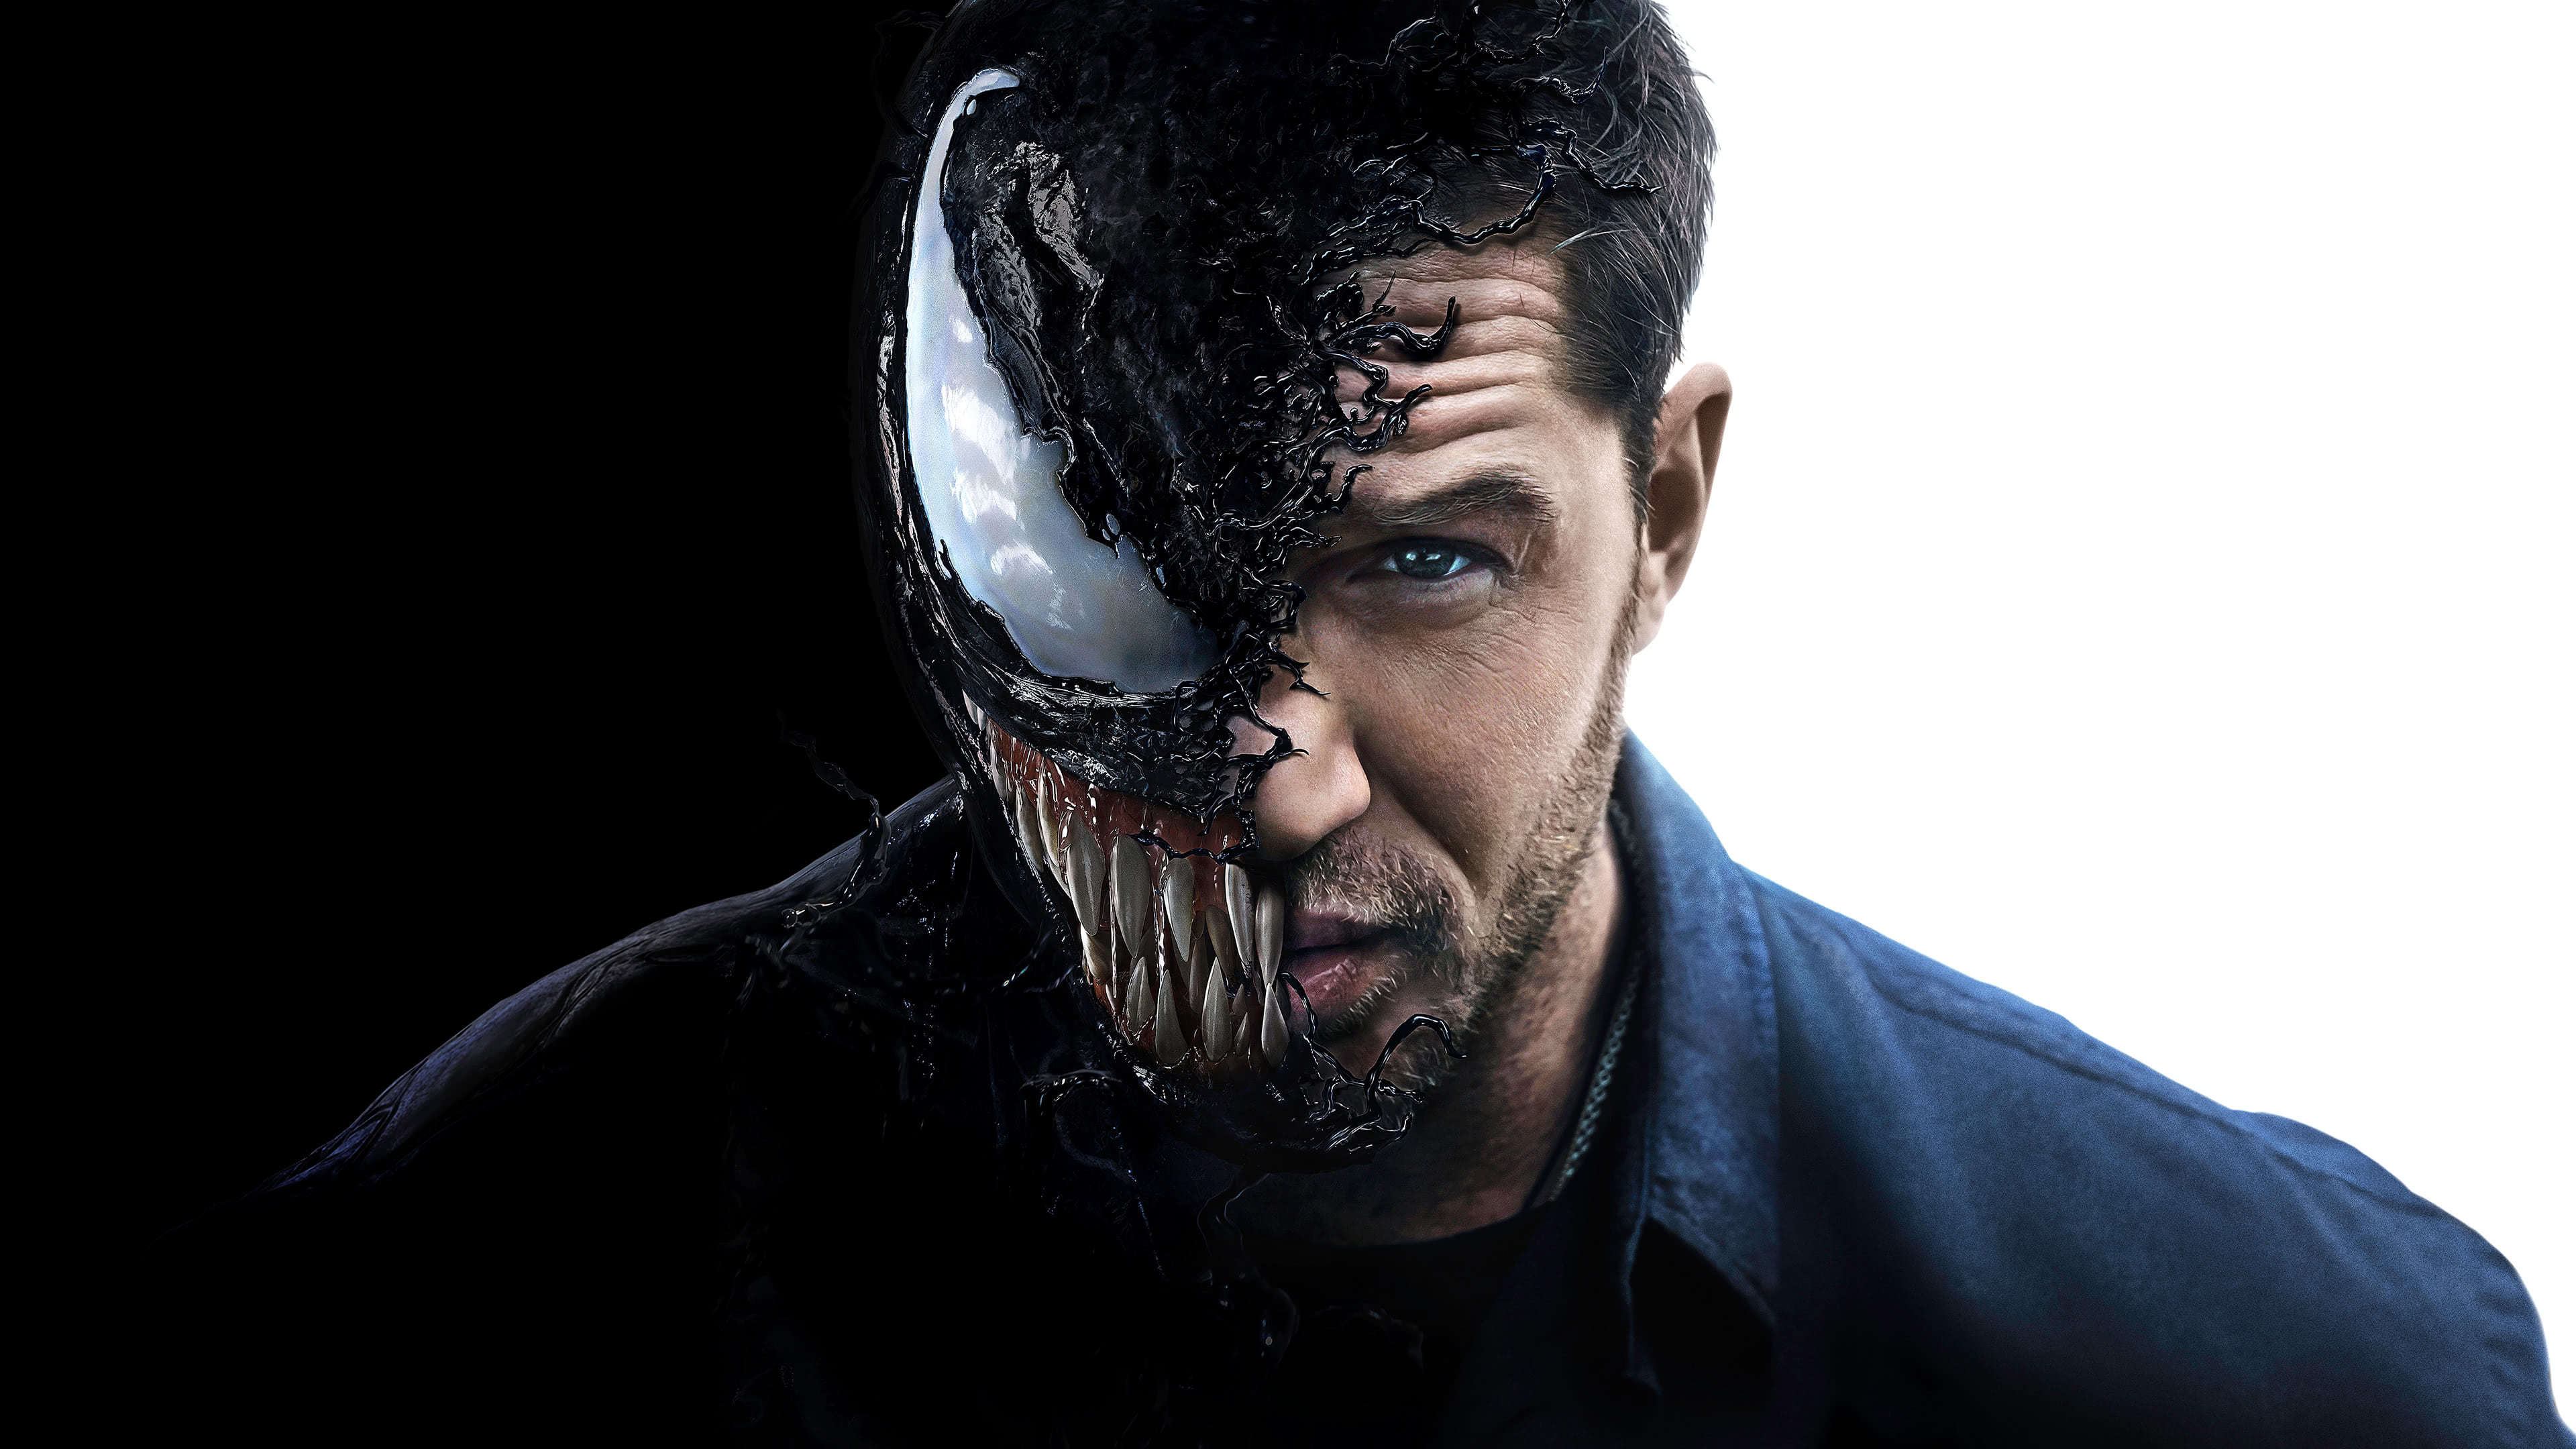 Venom Tom Hardy Uhd 4k Wallpaper Pixelz